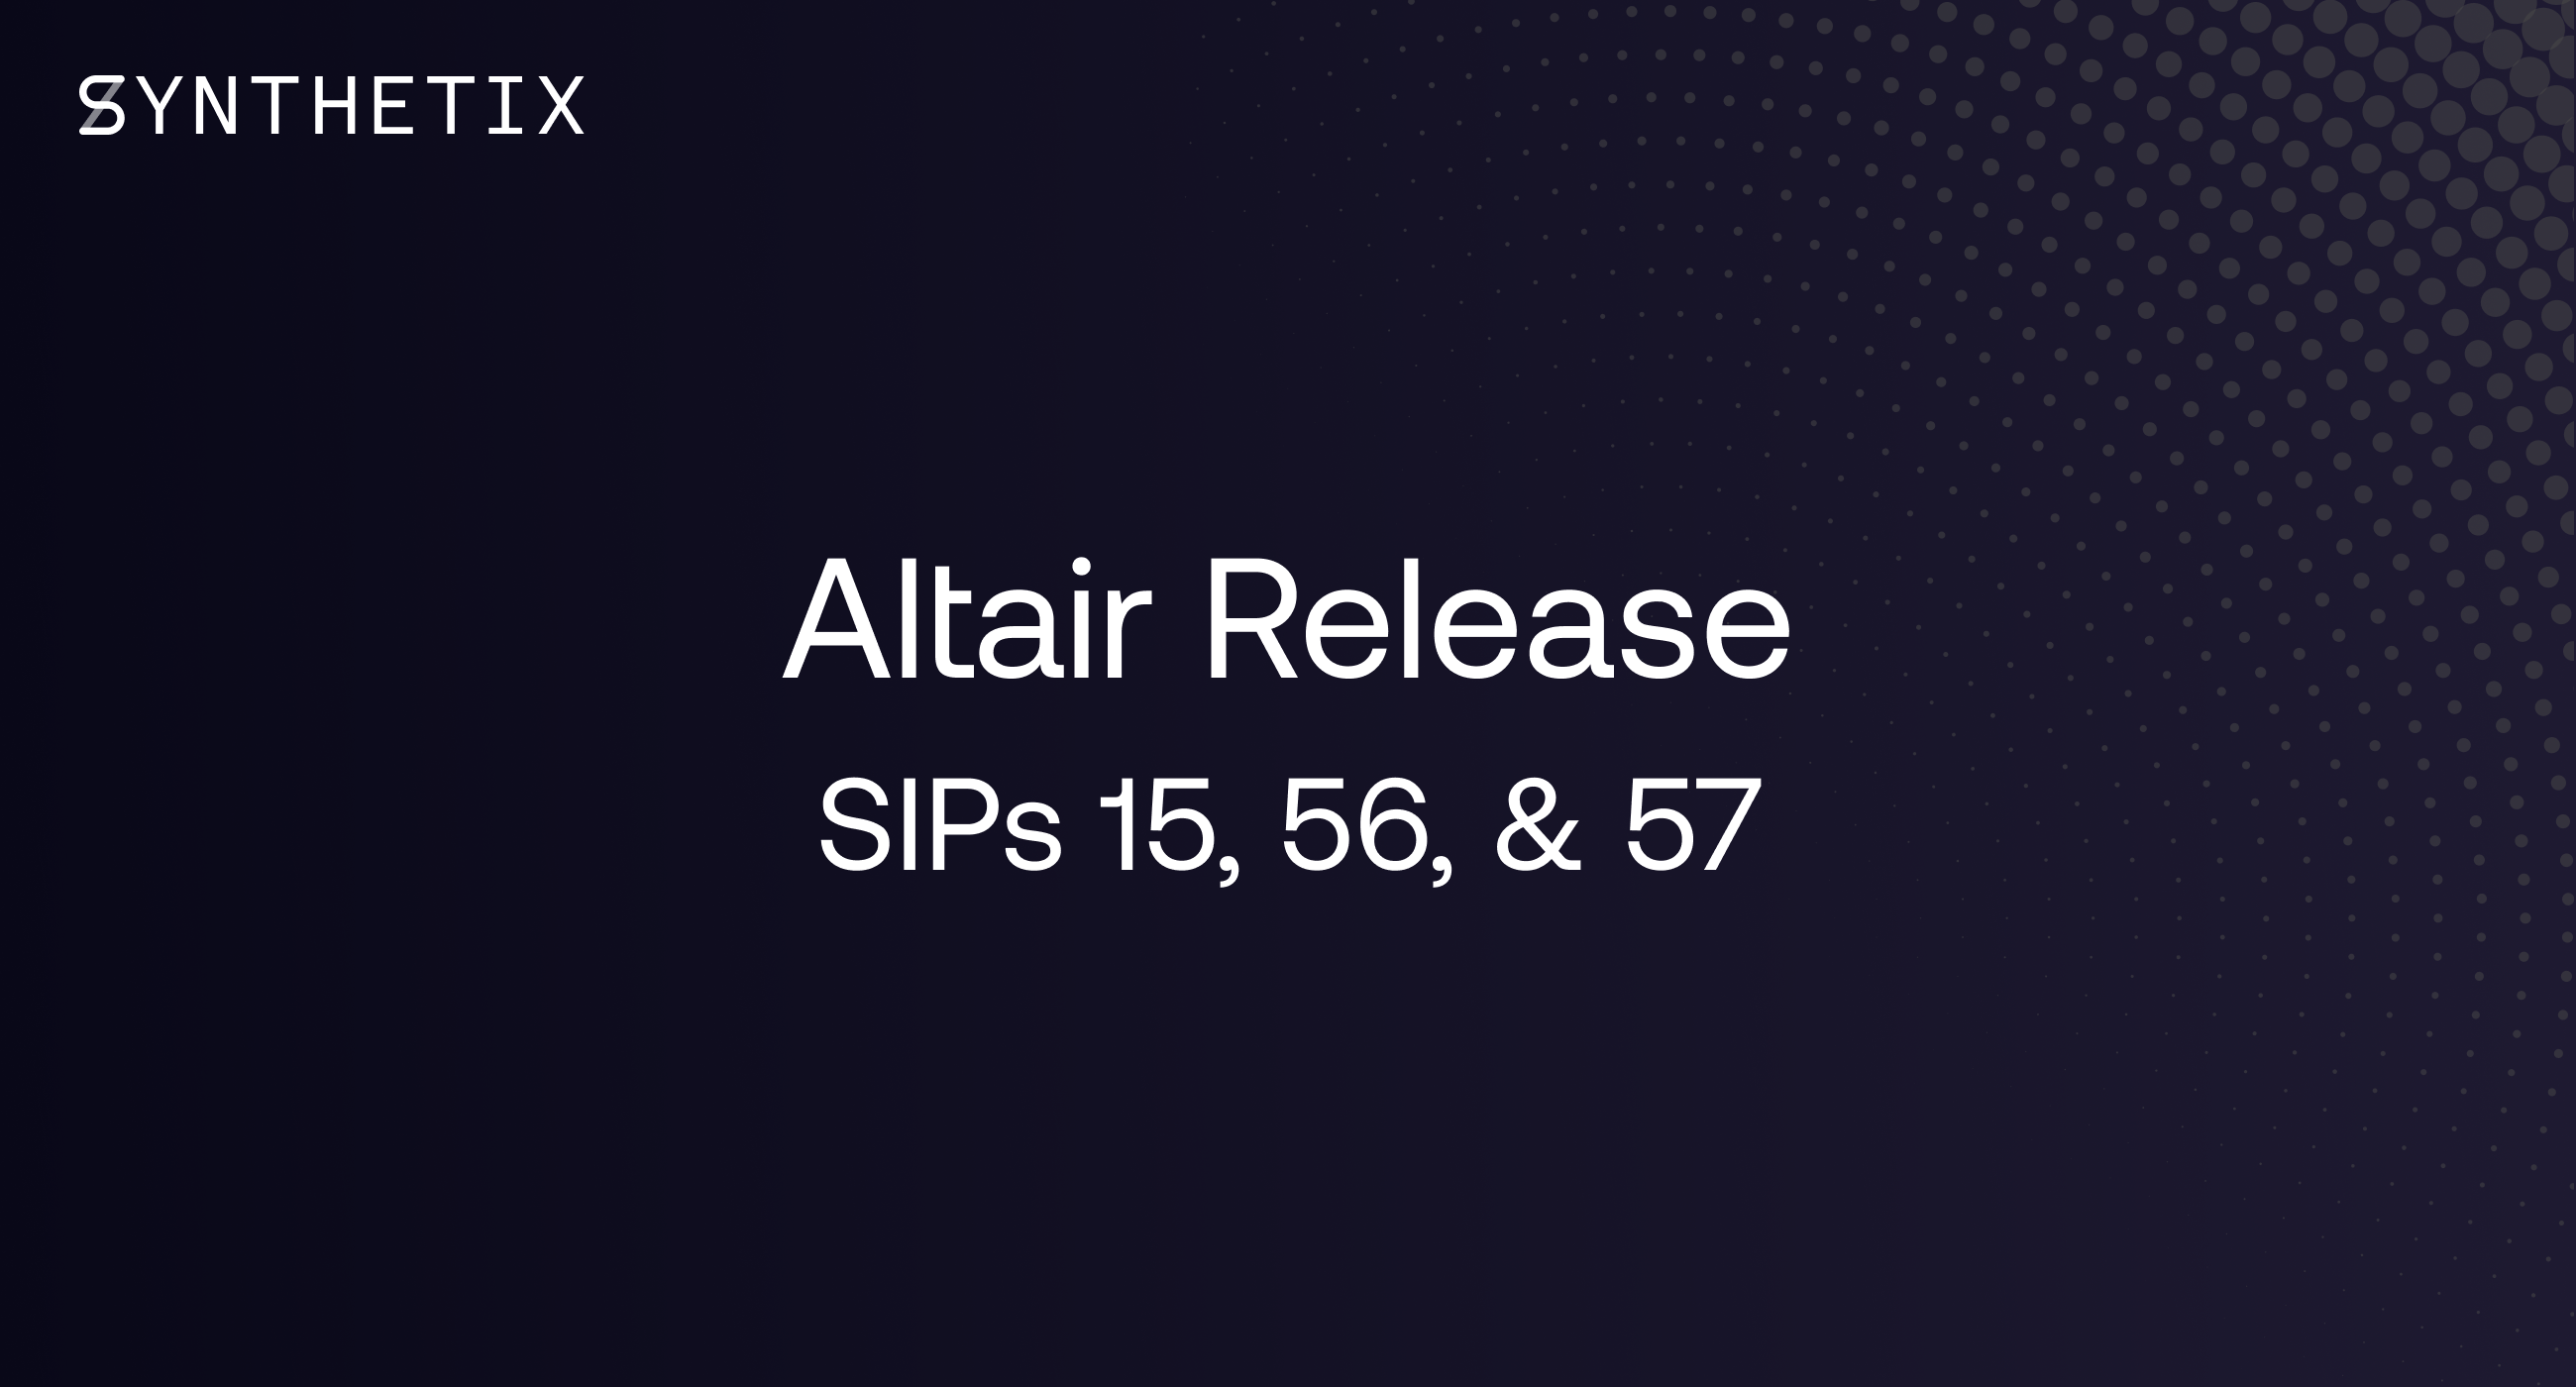 The Altair release